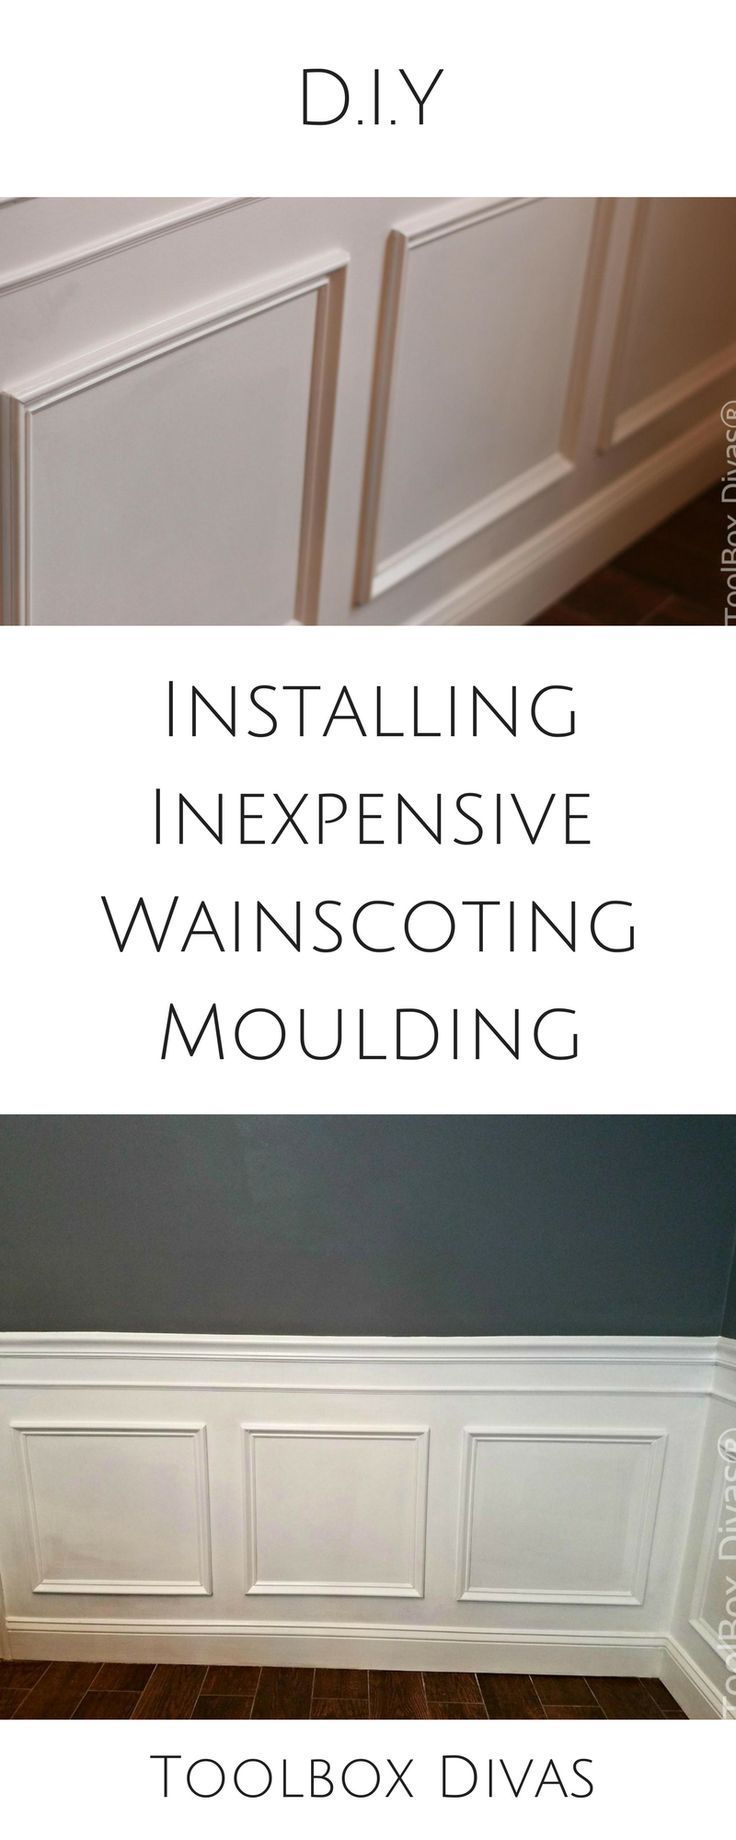 How to Install Picture Frame Moulding Wainscoting | Pinterest ...